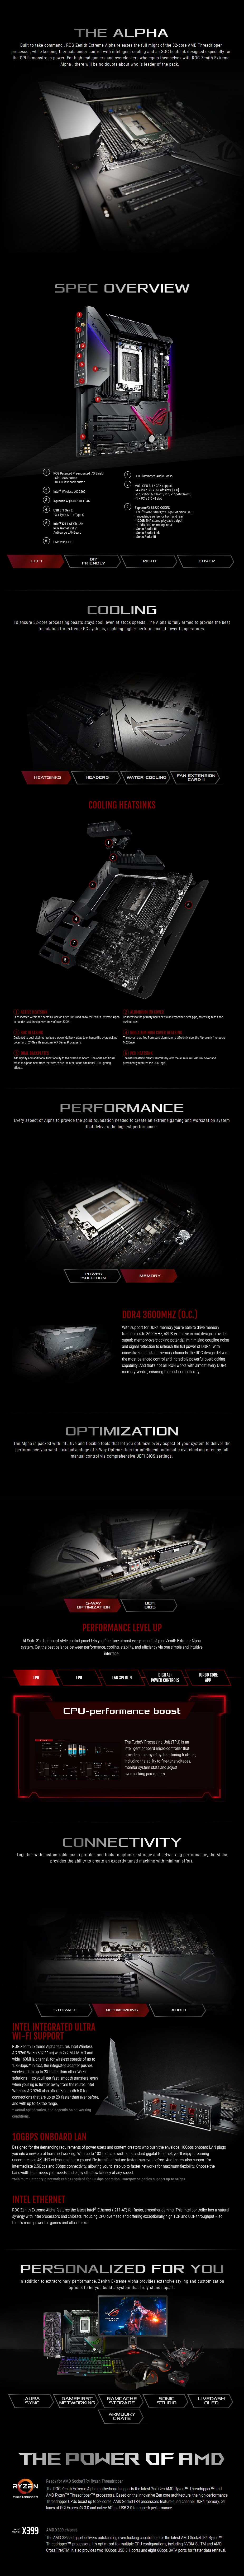 ASUS ROG Zenith Extreme Alpha X399 TR4 E-ATX Motherboard - Desktop Overview 1